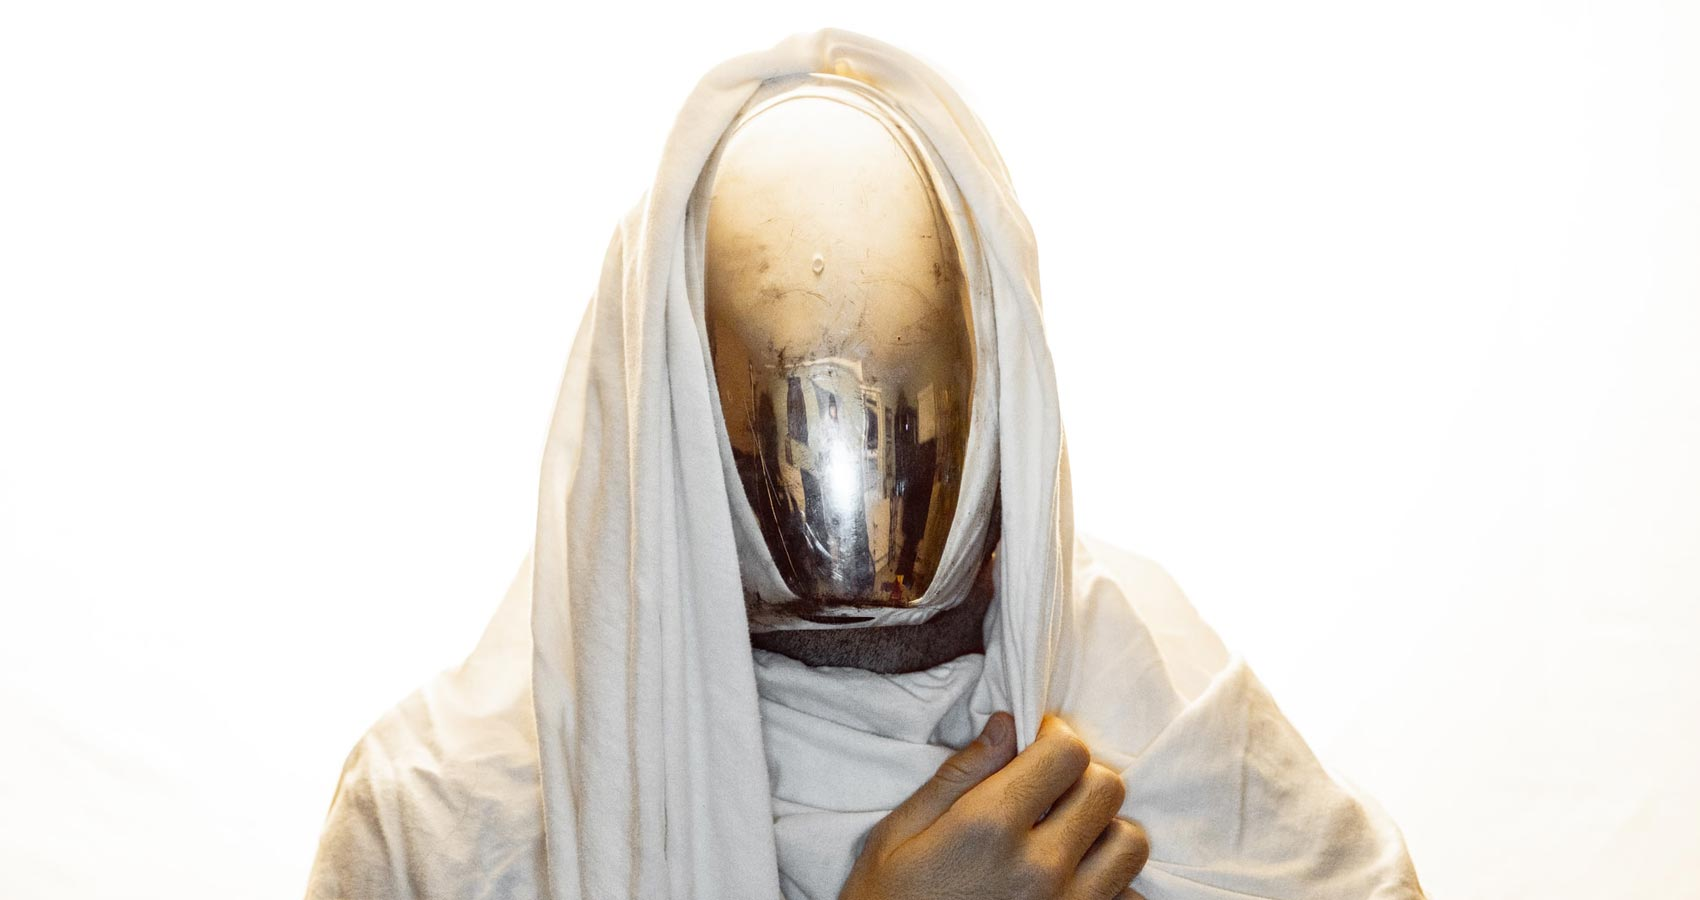 Masked, micropoetry by Salam Adejoke at Spillwords.com